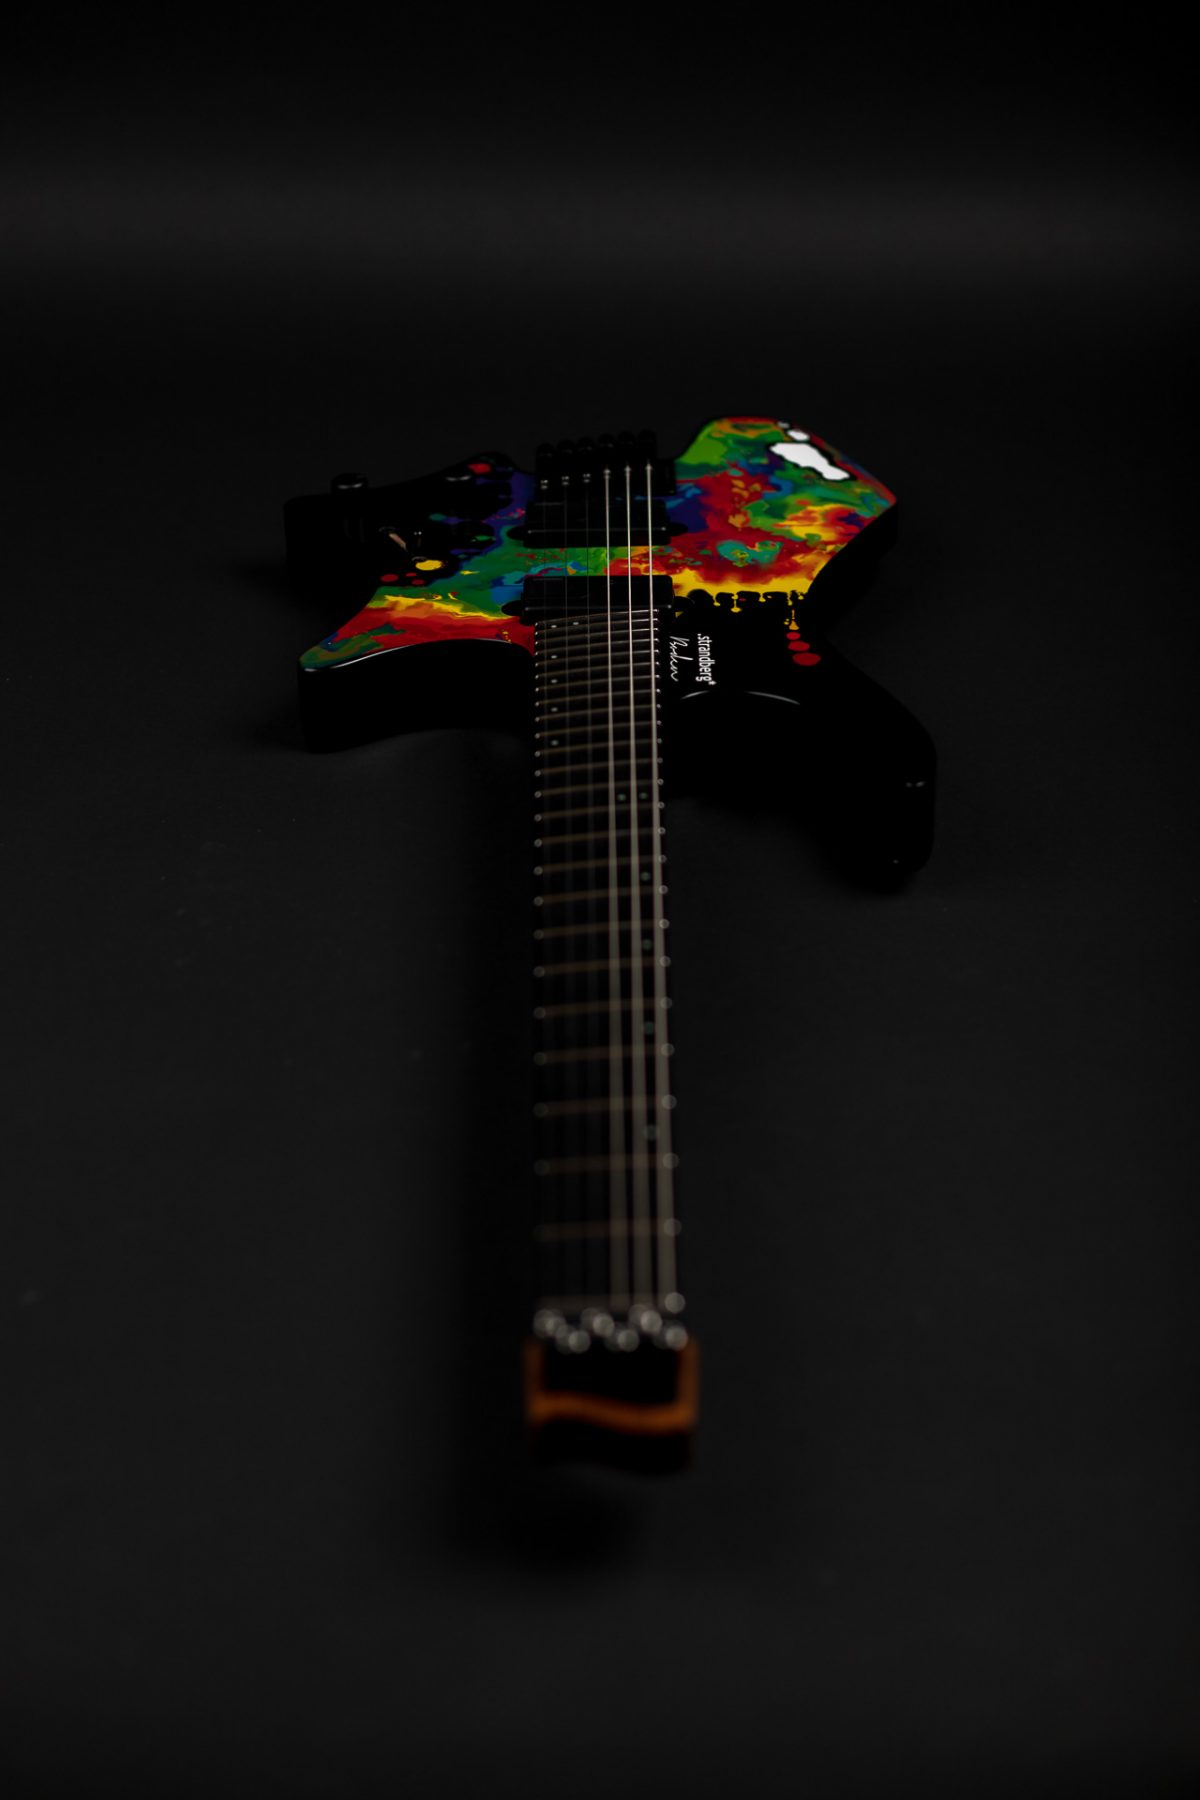 Sara Longfield 6 string headless guitar front view